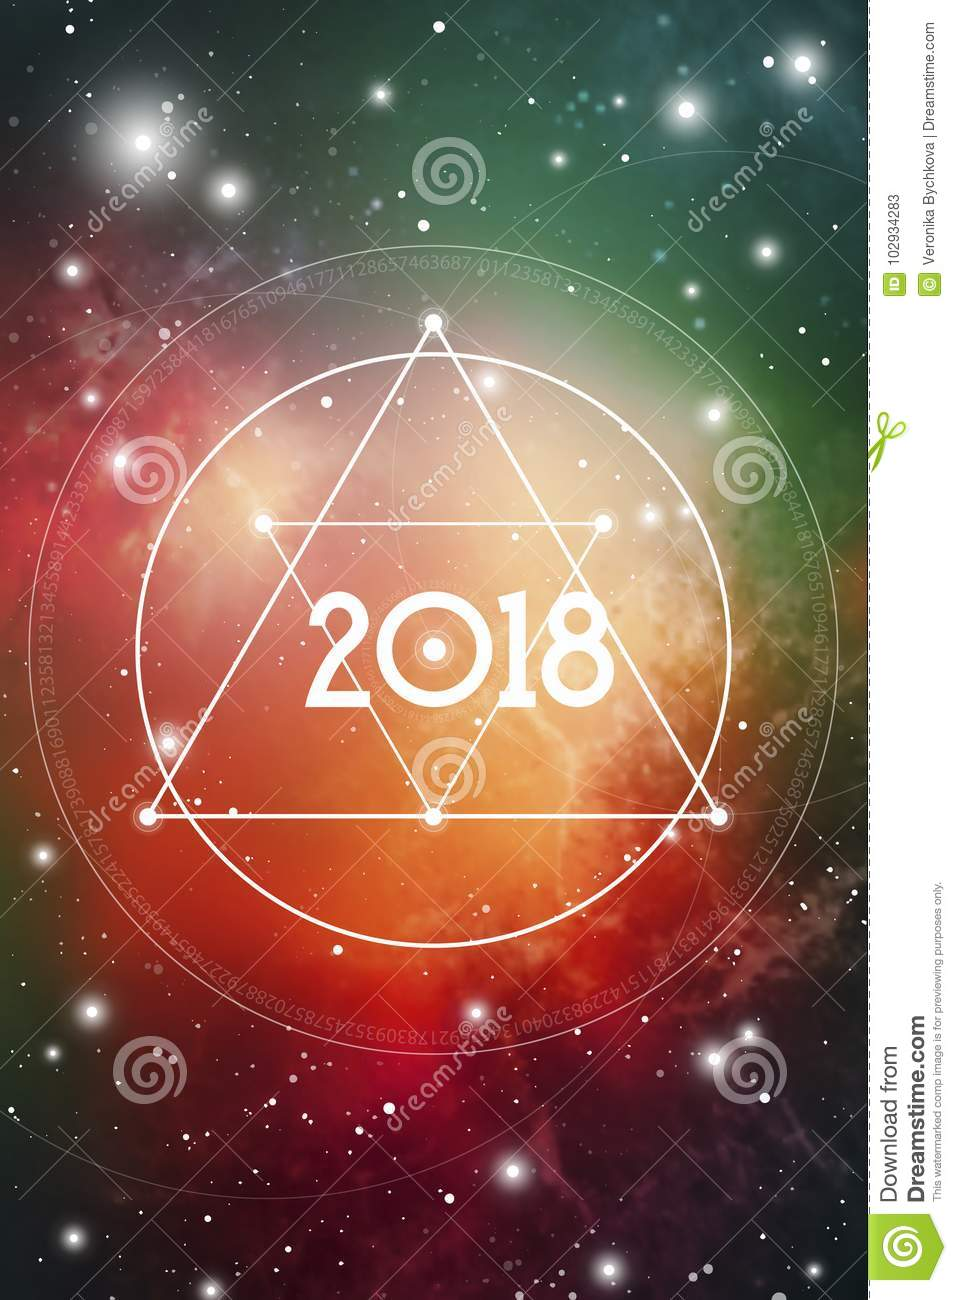 Astrological New Year 2018 Greeting Card Or Calendar Cover On Cosmic